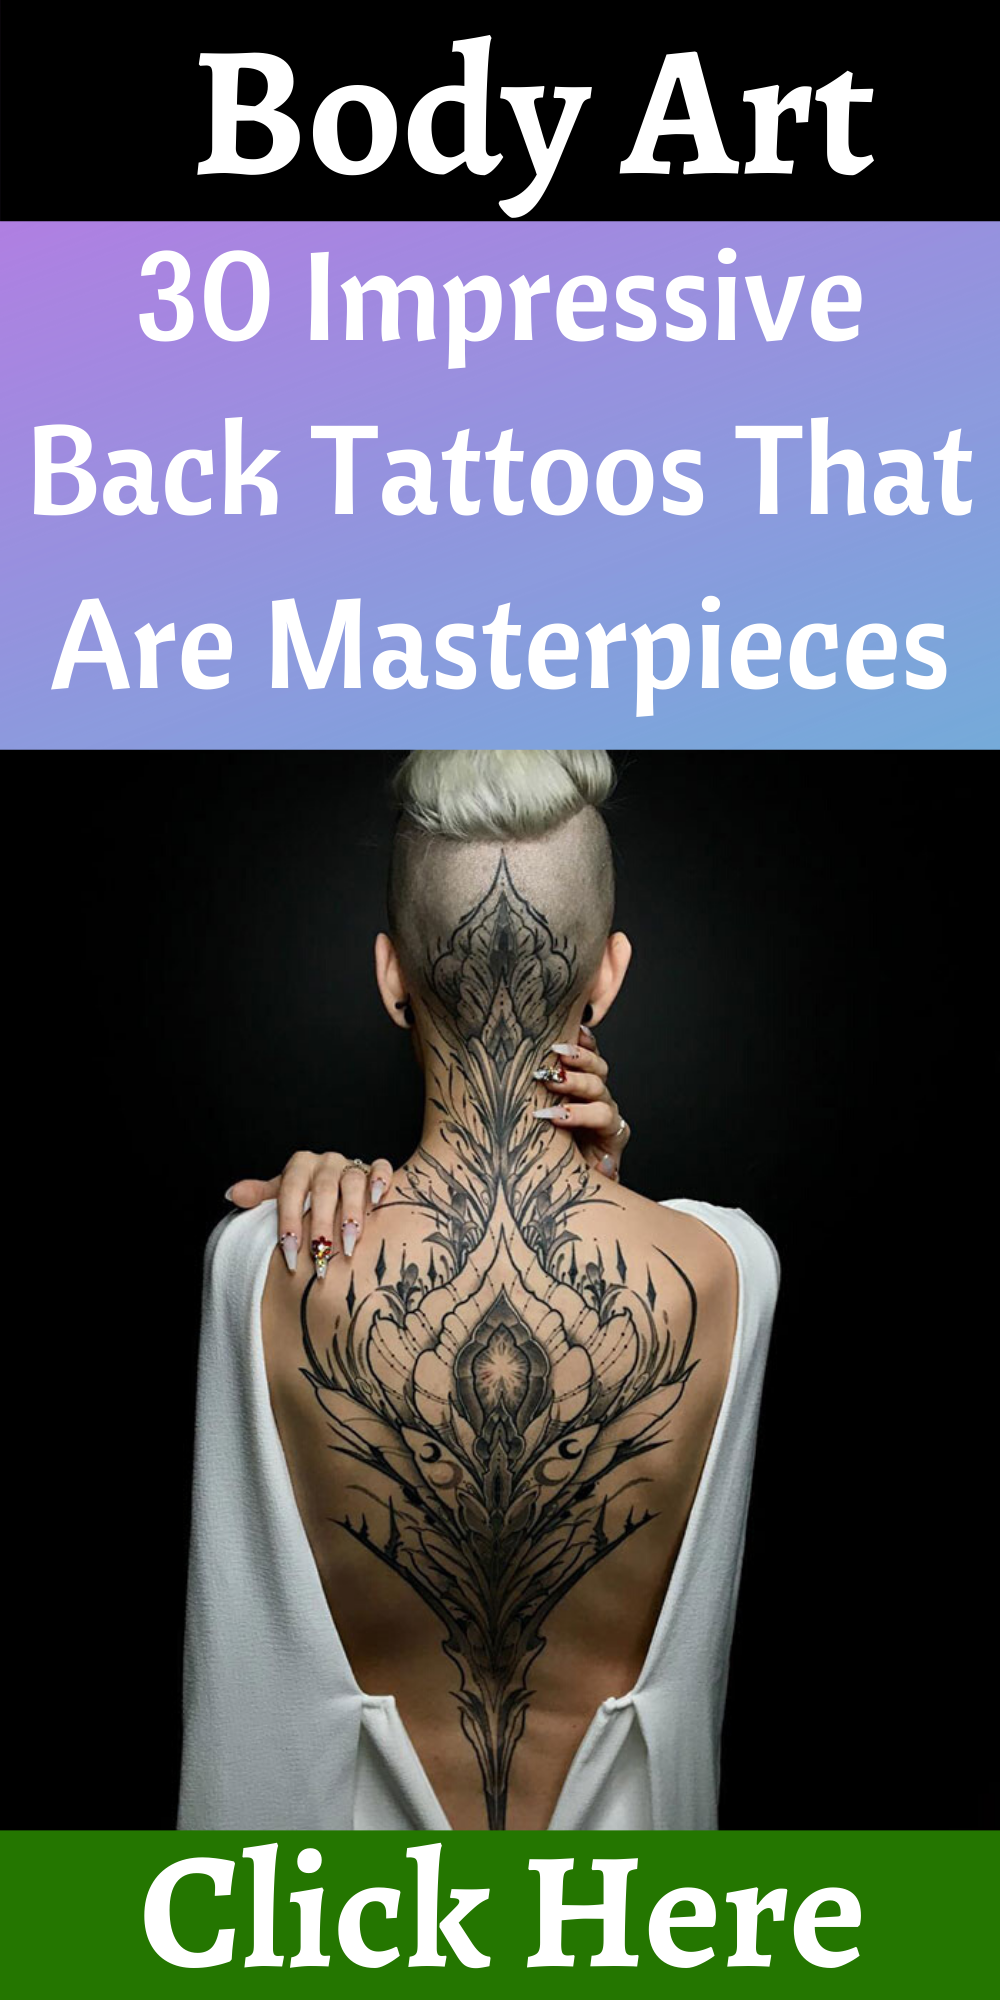 30 Impressive Back Tattoos That Are Masterpieces | Back